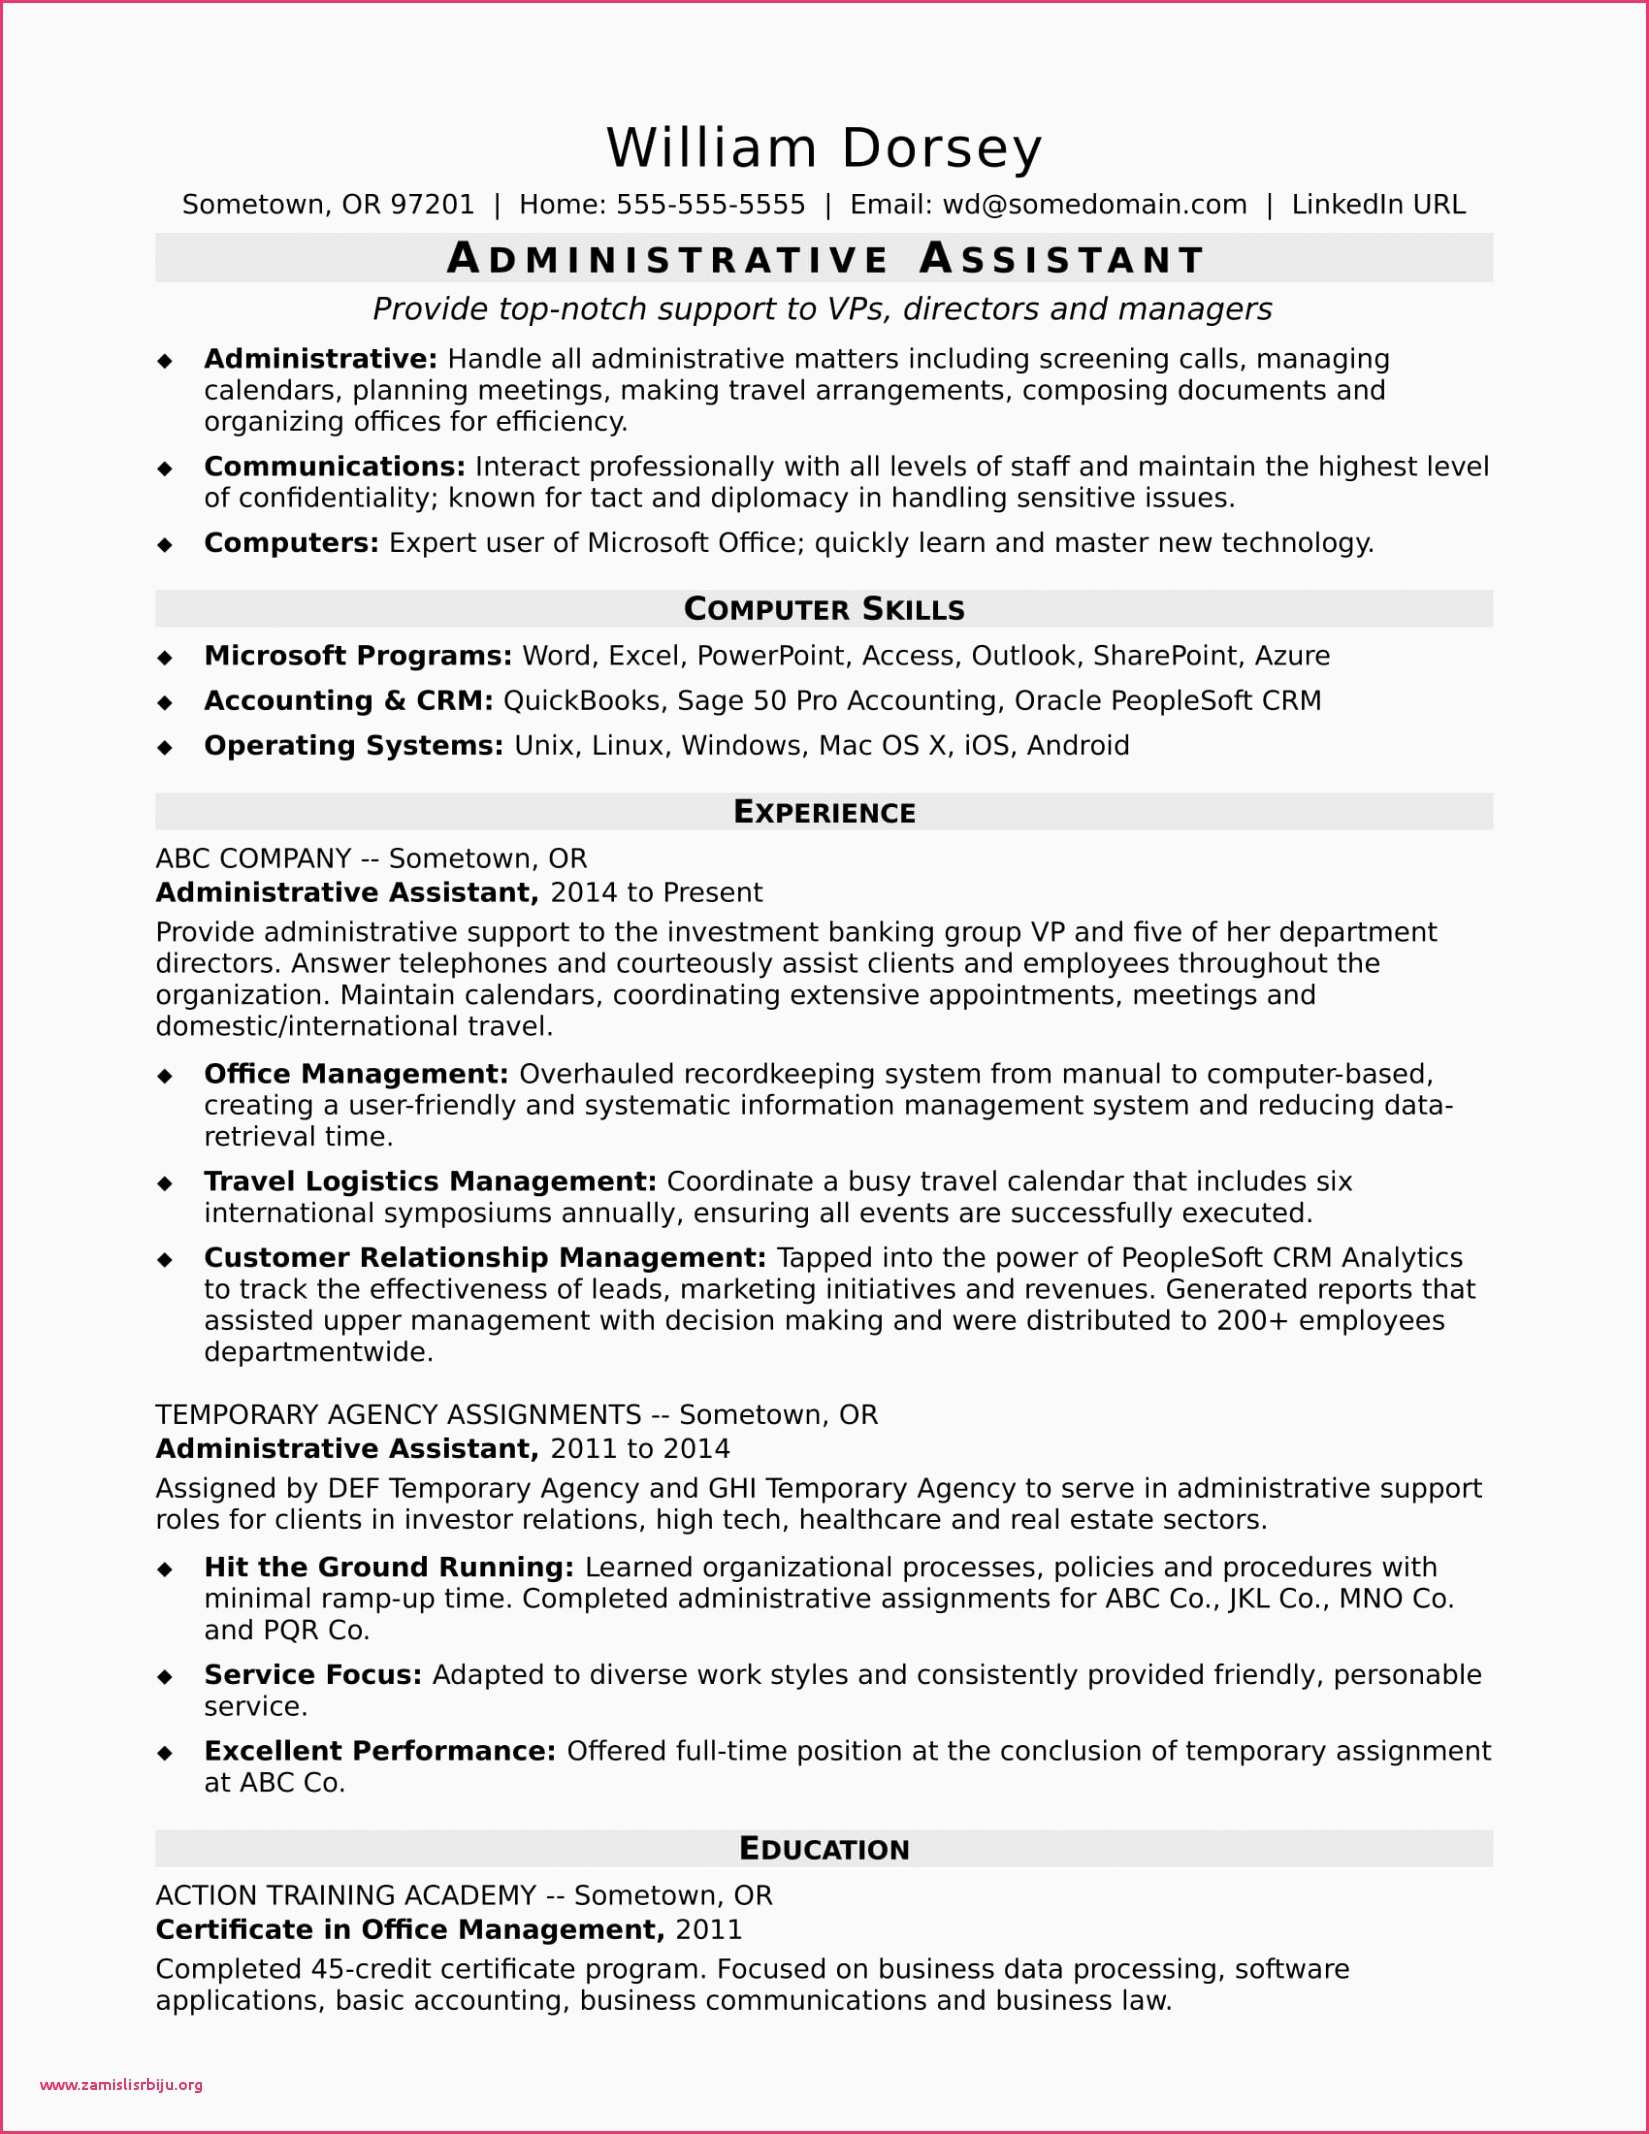 Accounting Resume Template Word - Accountant Resume Example Resume for Accountant Resume for